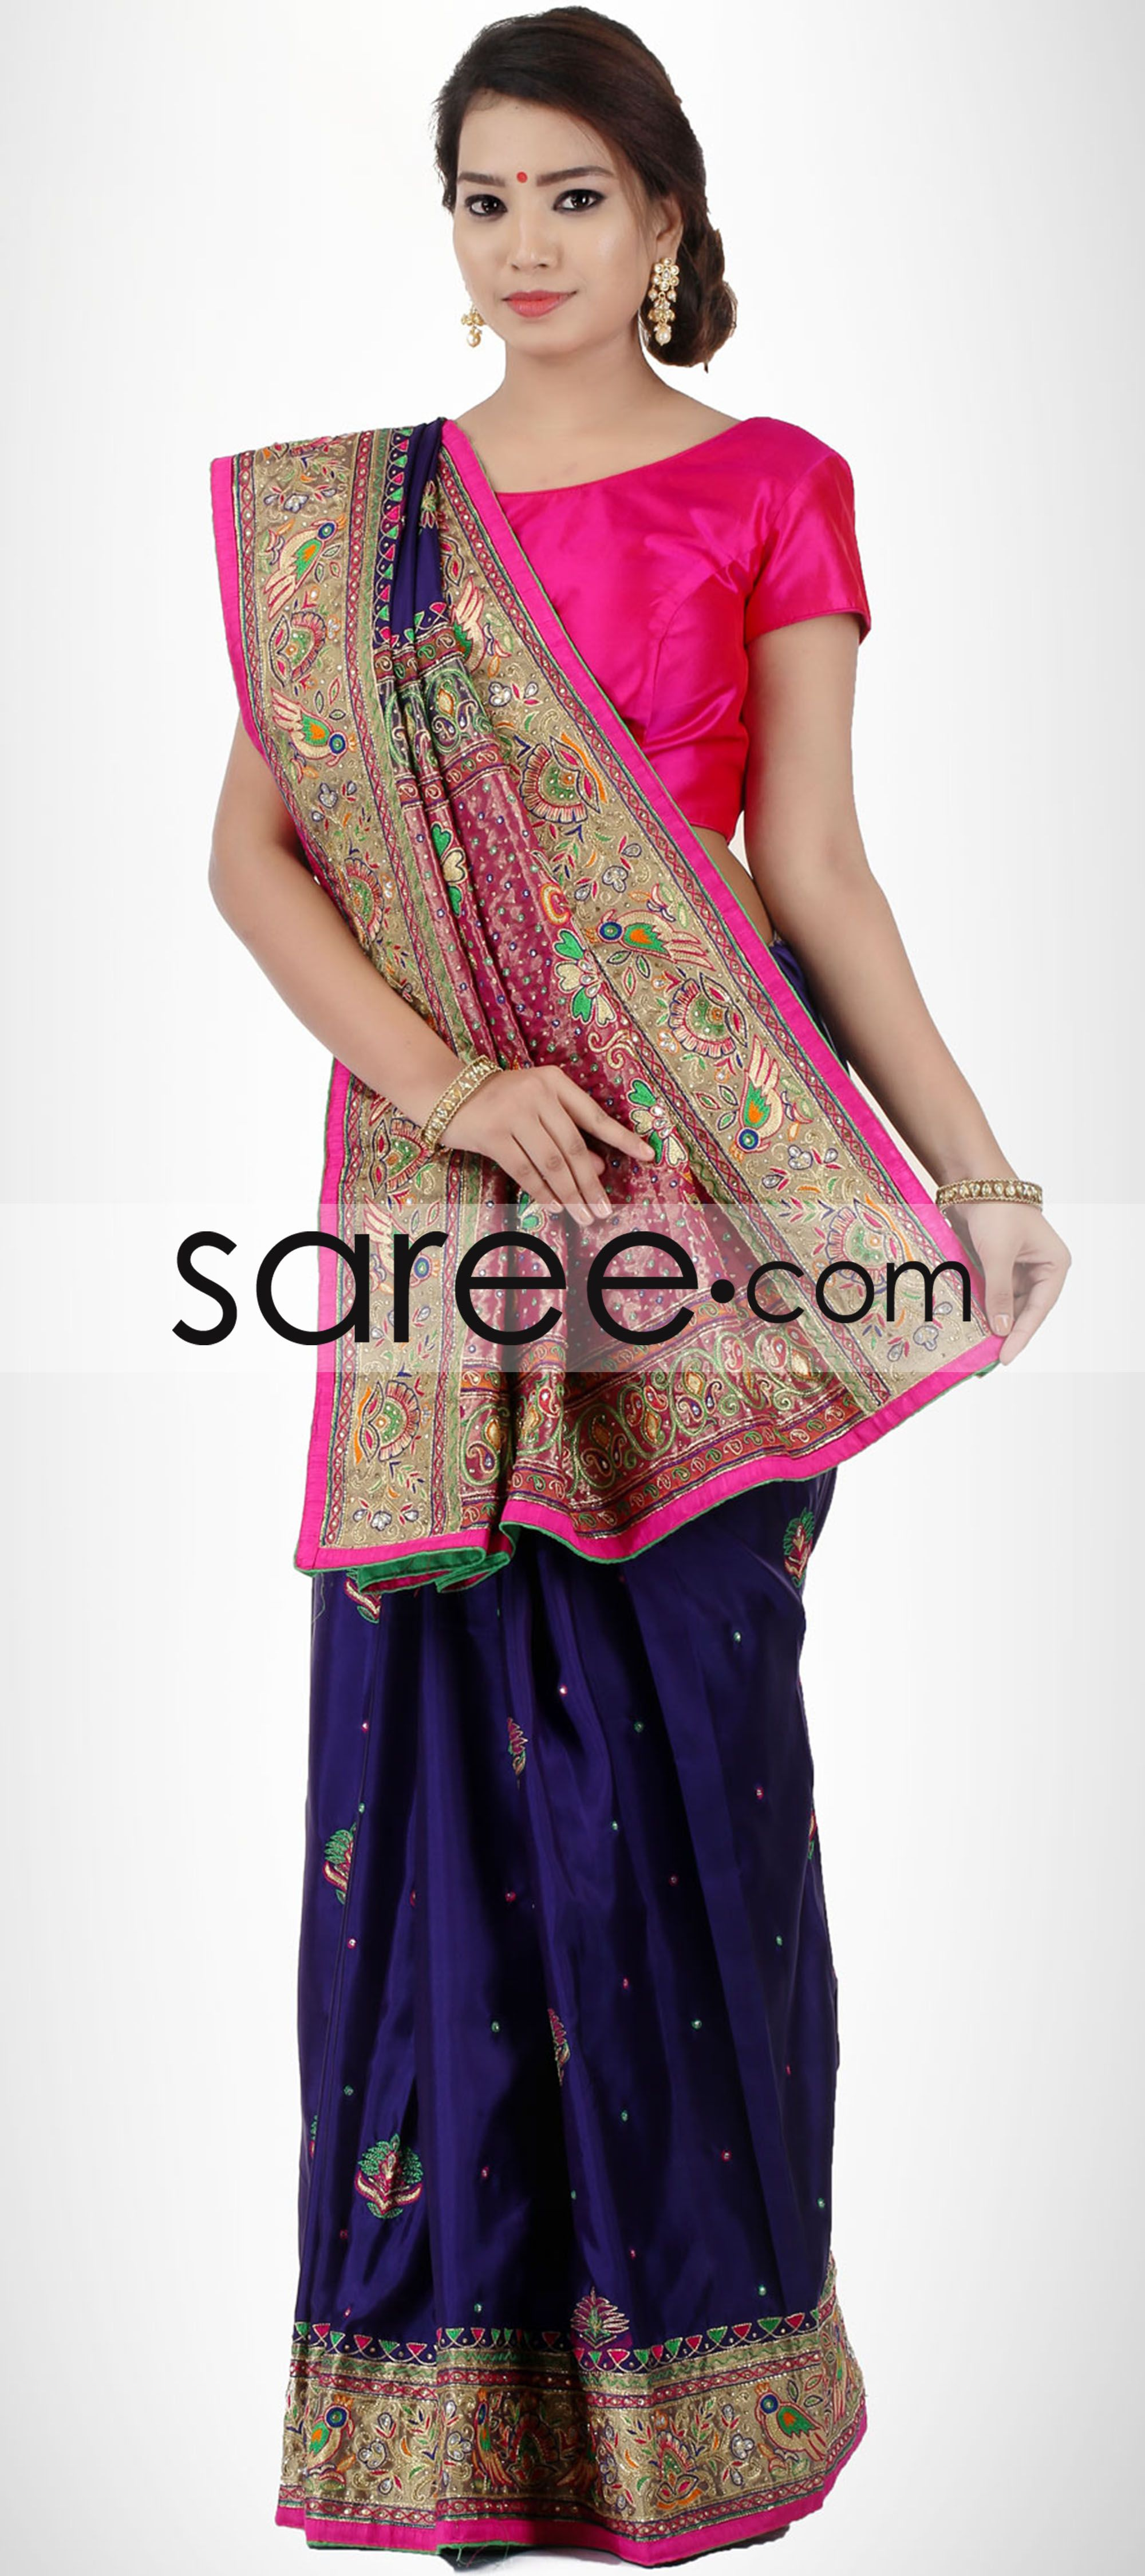 Blue And Purple Silk Saree With Resham Work By Asopalav Saree Chiffonsarees Georgettesarees Indiansaree Sarees Silksarees Partywearsarees